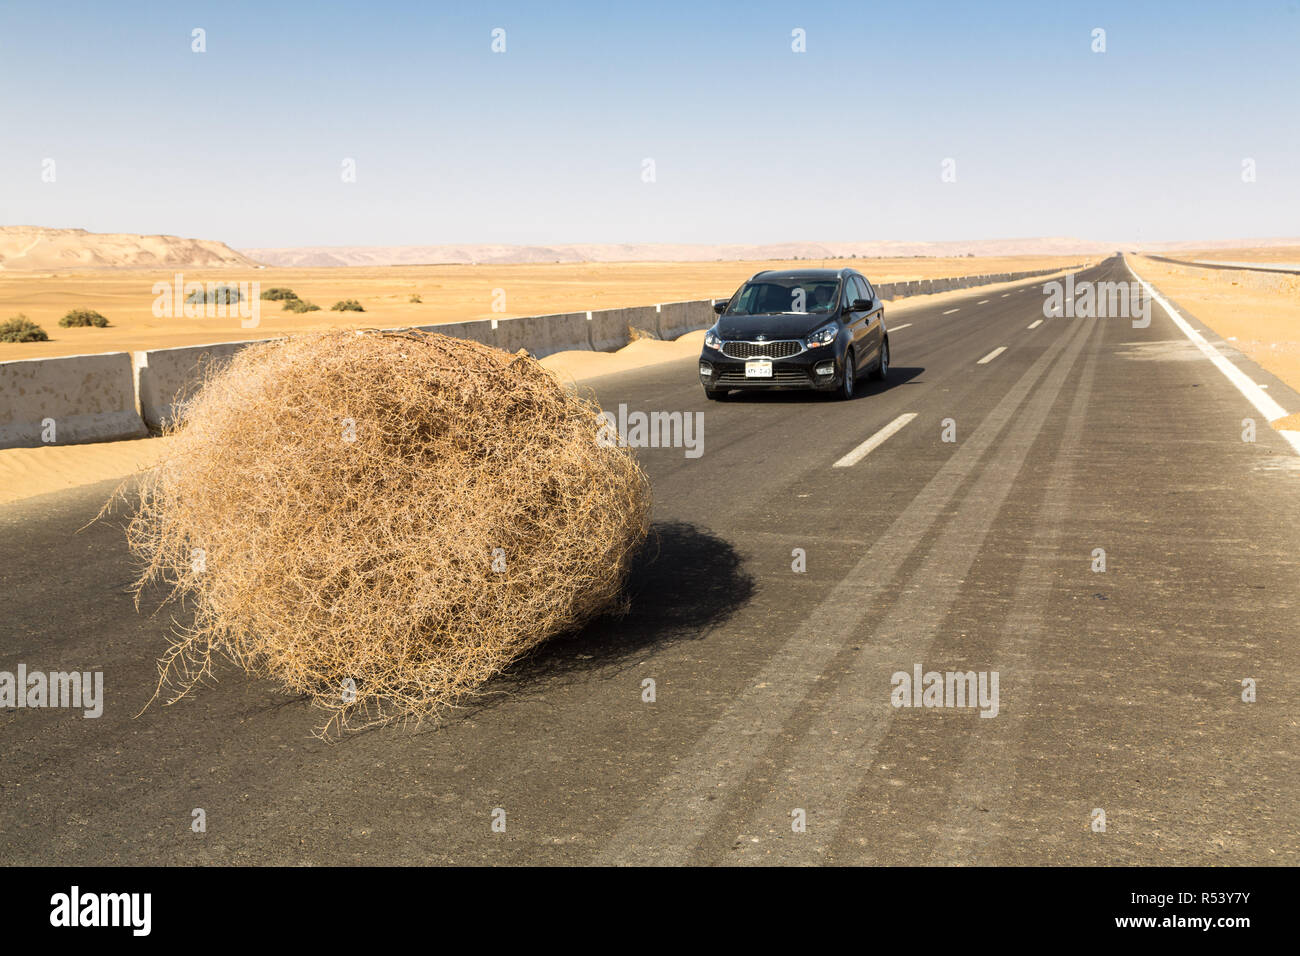 A car stopped by a giant tumbleweed on a highway with sandy dunes, between Bahariya oasis and Farafra, Sahara, Western Desert of Egypt. - Stock Image